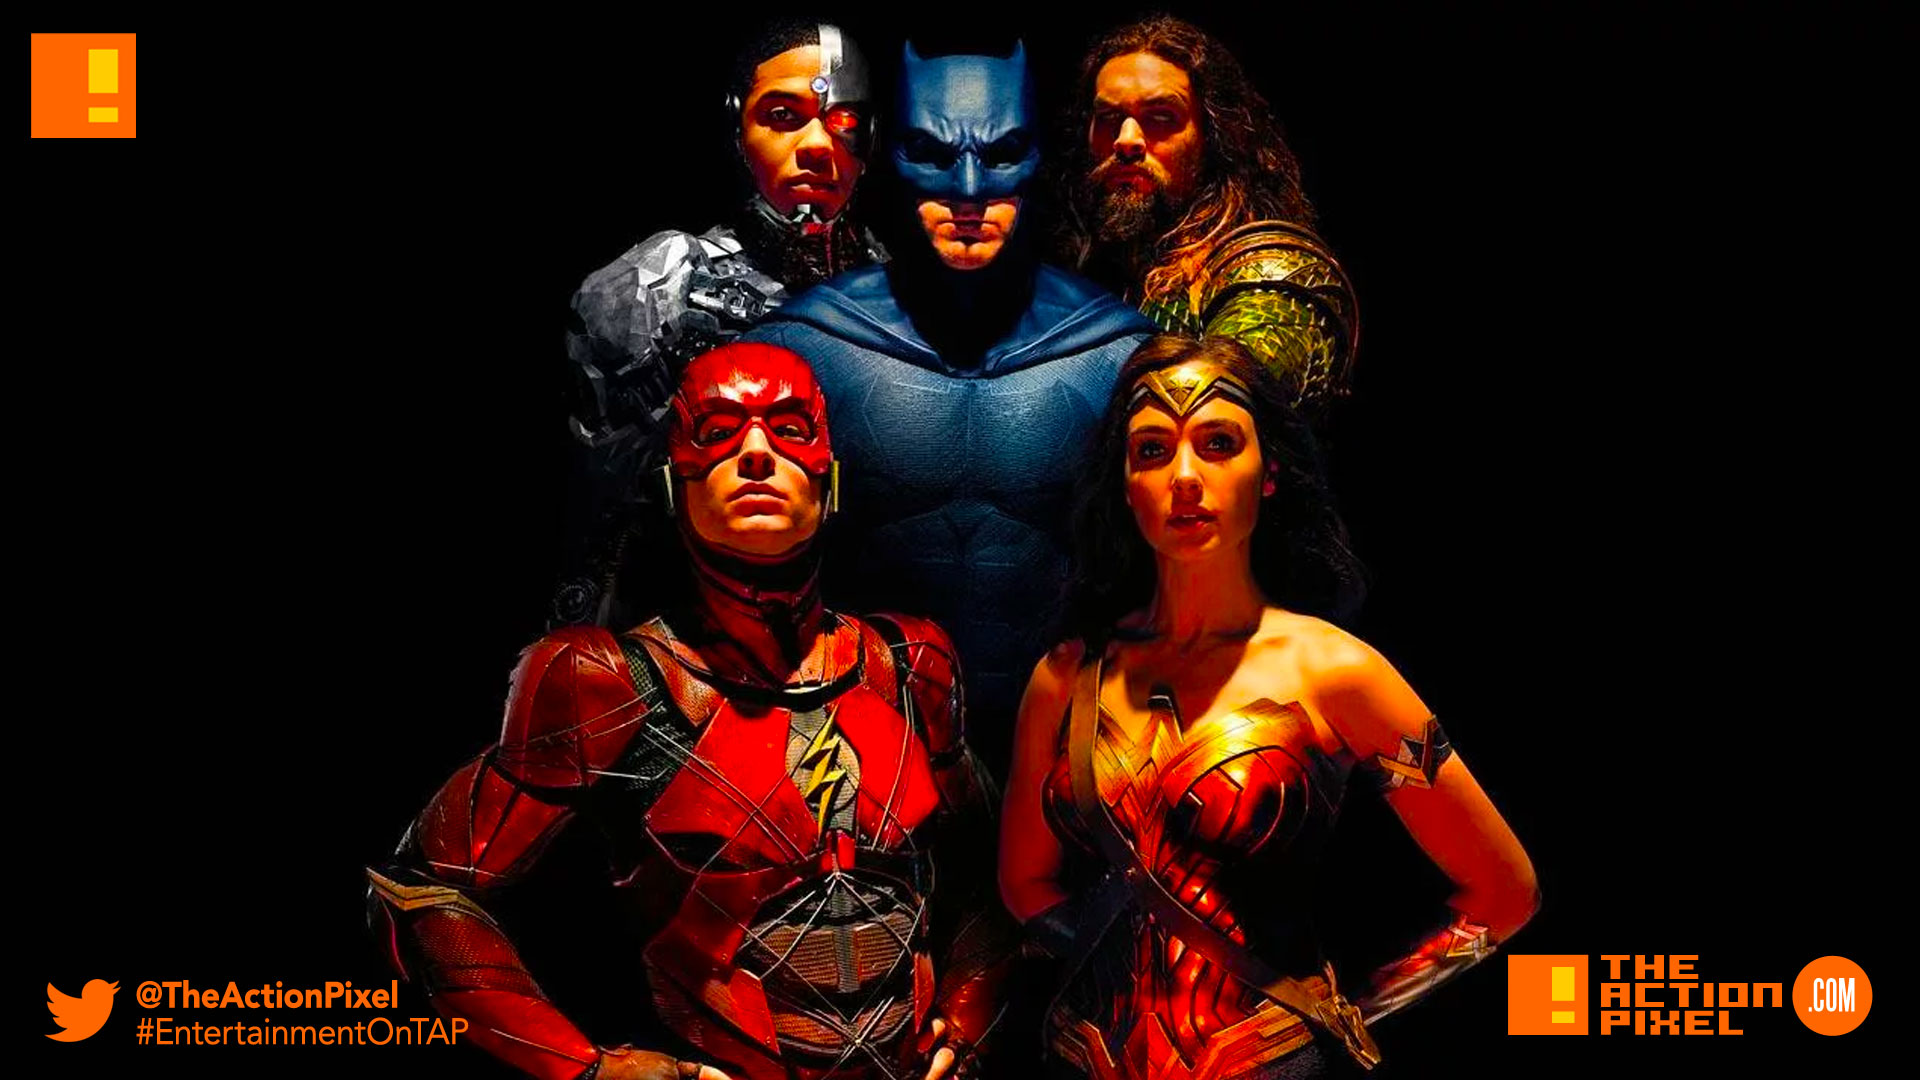 unite the league,JL, justice league, dc comics ,batman, superman, wonder woman, princess diana, diana prince, bruce wayne, ben affleck, batfleck, batffleck, gal gadot, cyborg, ray fisher, aquaman, jason momoa, arthur , flash,ezra miller, justice league movie, zack snyder, poster, wb pictures, warner bros. pictures, warner bros, the action pixel, entertainment on tap,teaser, poster,